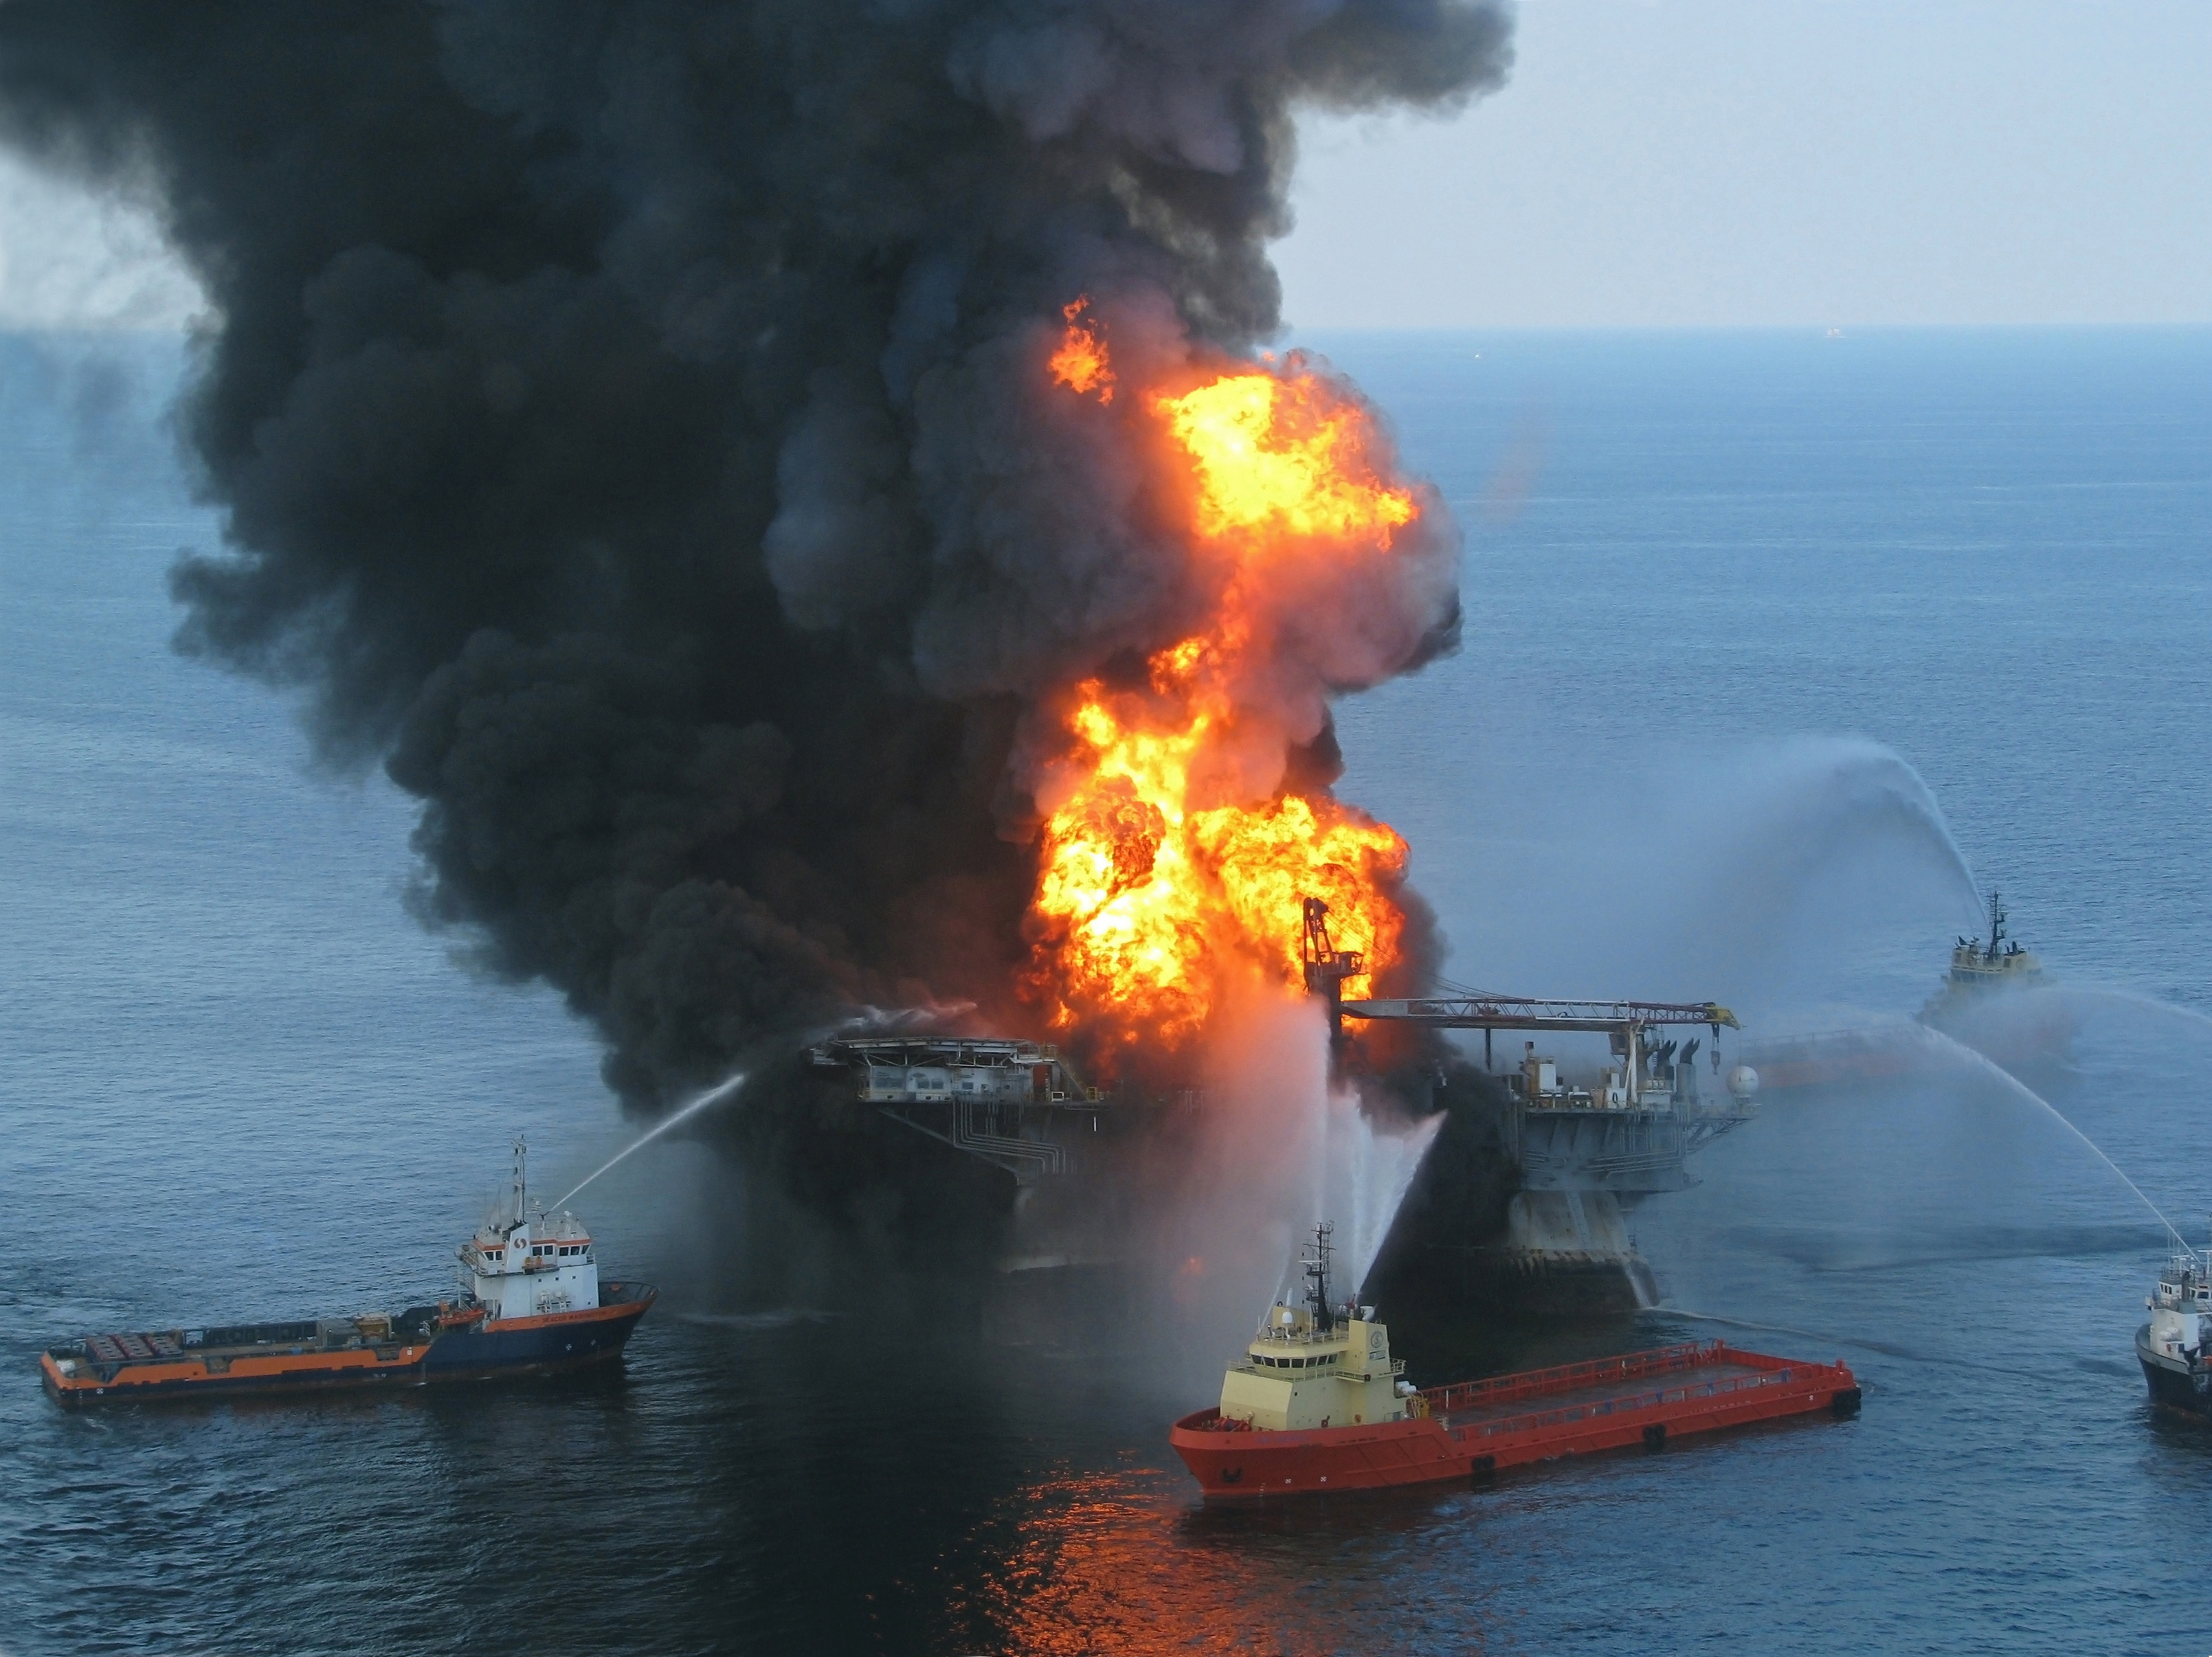 [4] Deepwater Horizon on fire, 2010_res